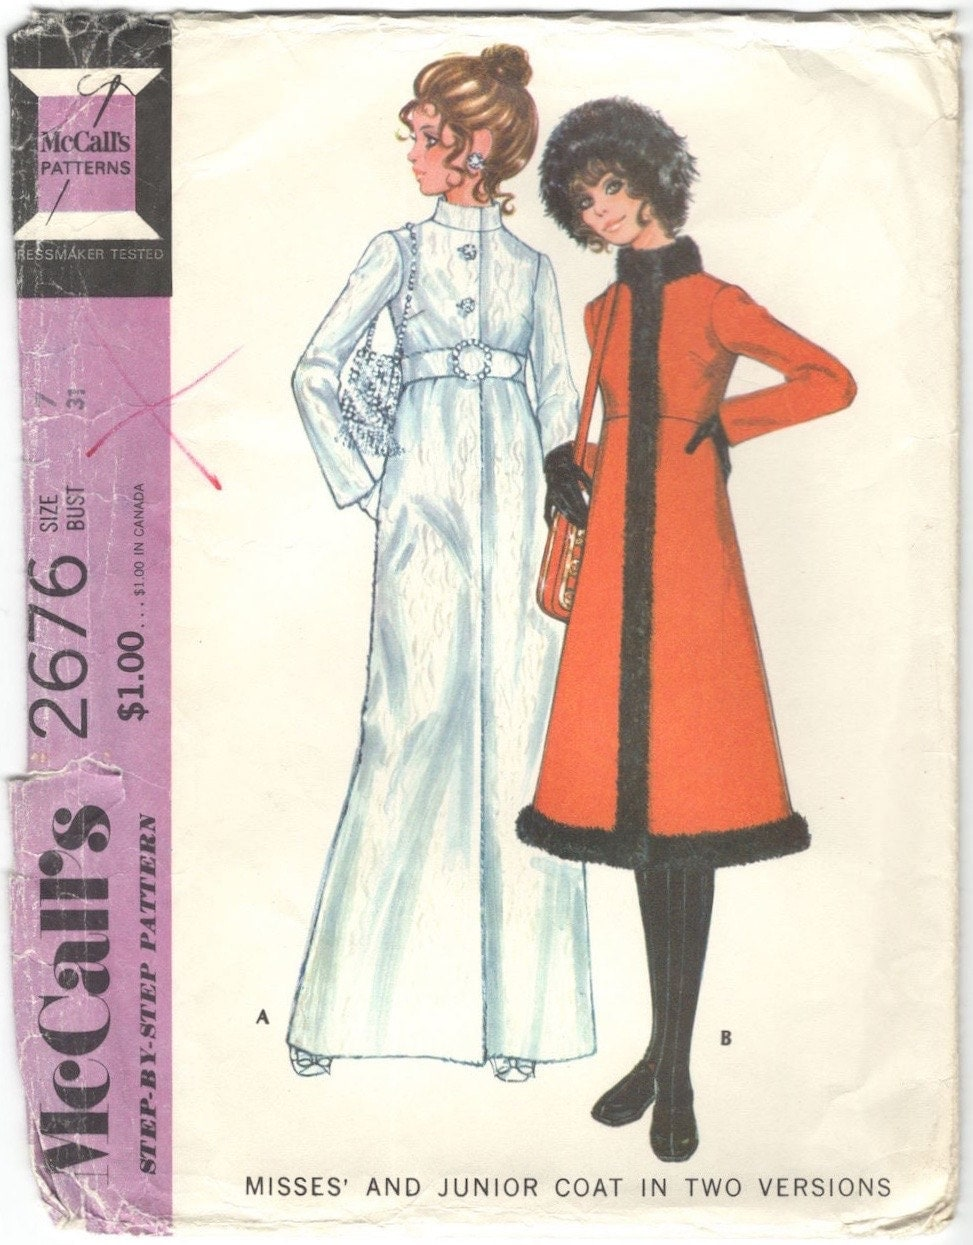 1970s red, fur-trimmed coat pattern - McCall's 2676